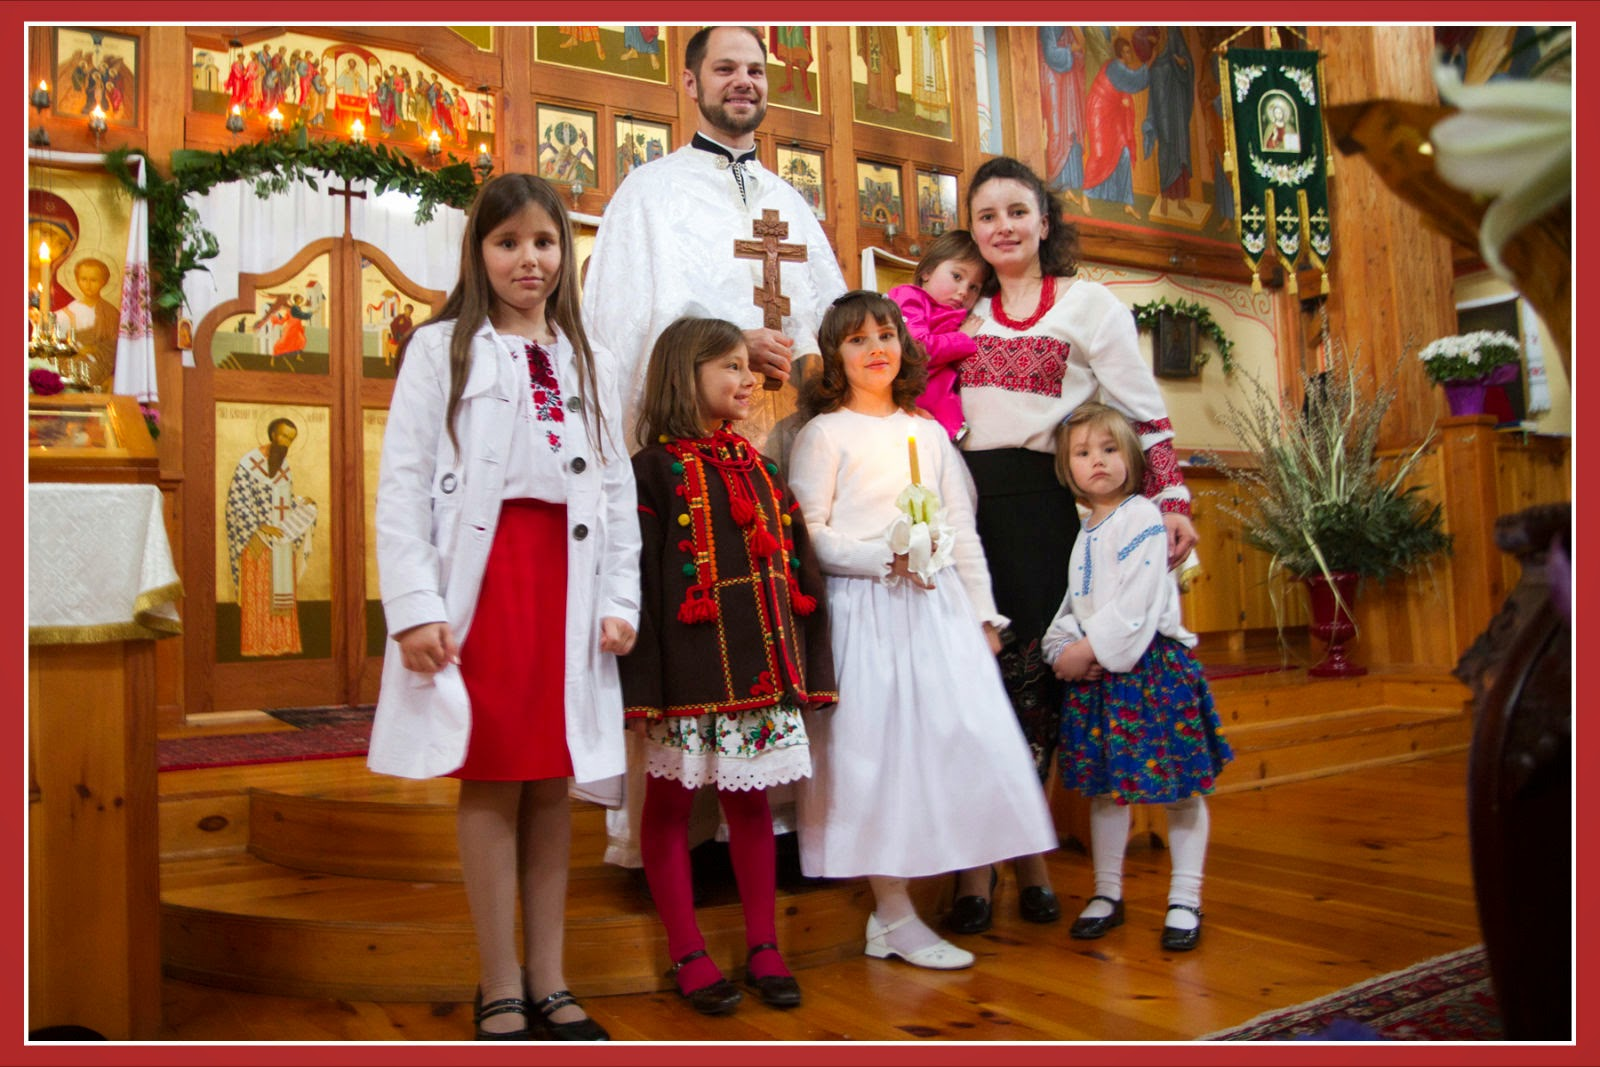 catholic singles in ephraim Faith focused dating and relationships browse profiles & photos of utah traditional catholic singles and join catholicmatchcom, the clear leader in online dating for catholics with more catholic singles than any other catholic dating site.